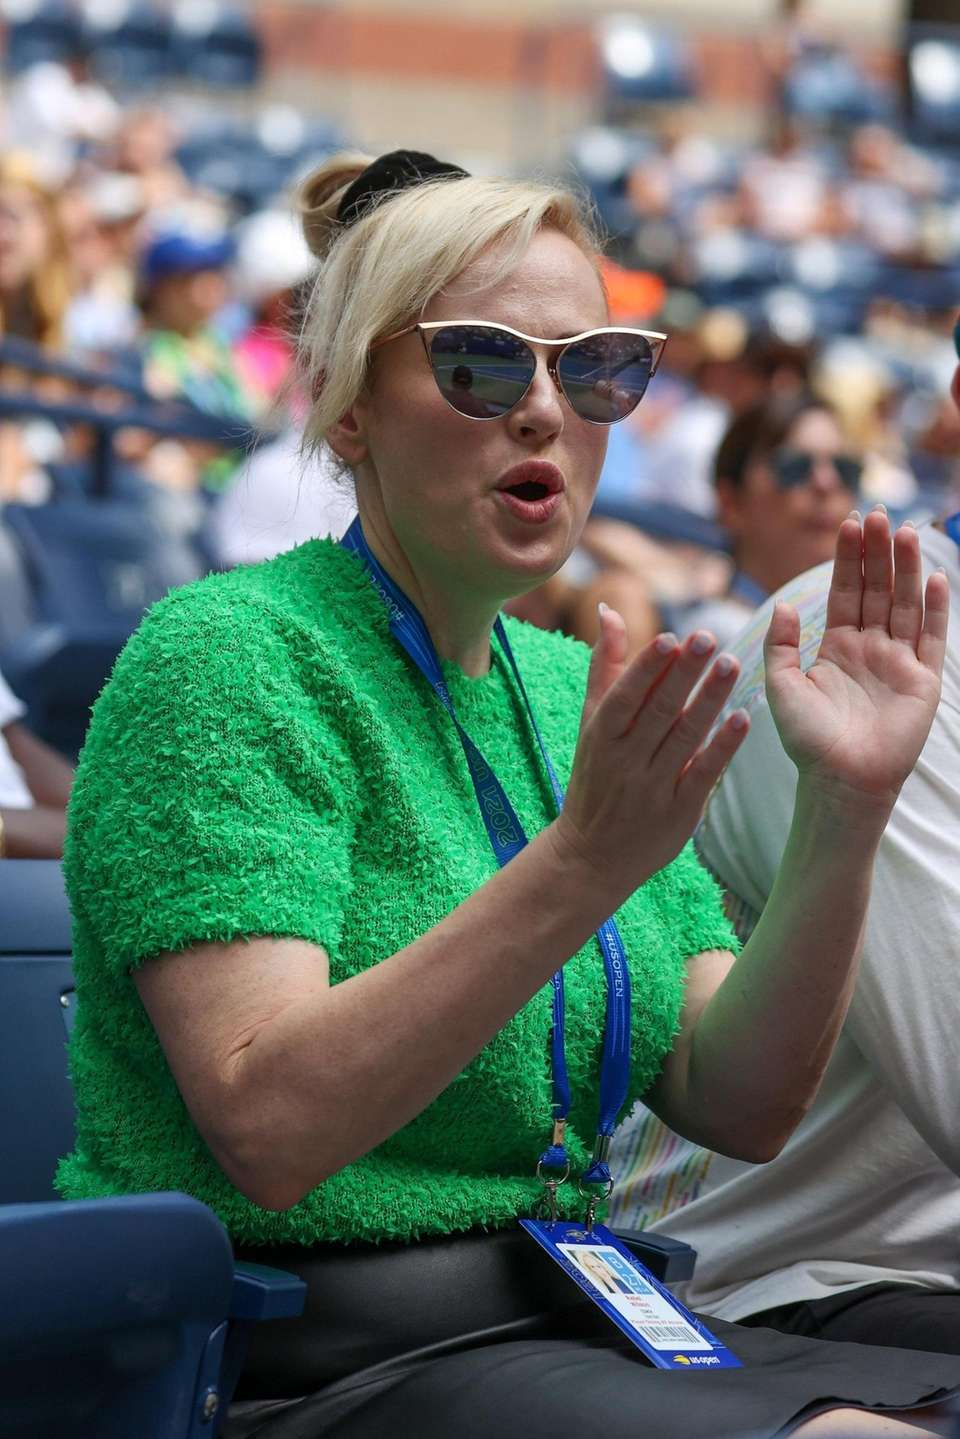 Actress and Comedian Rebel Wilson attends the match